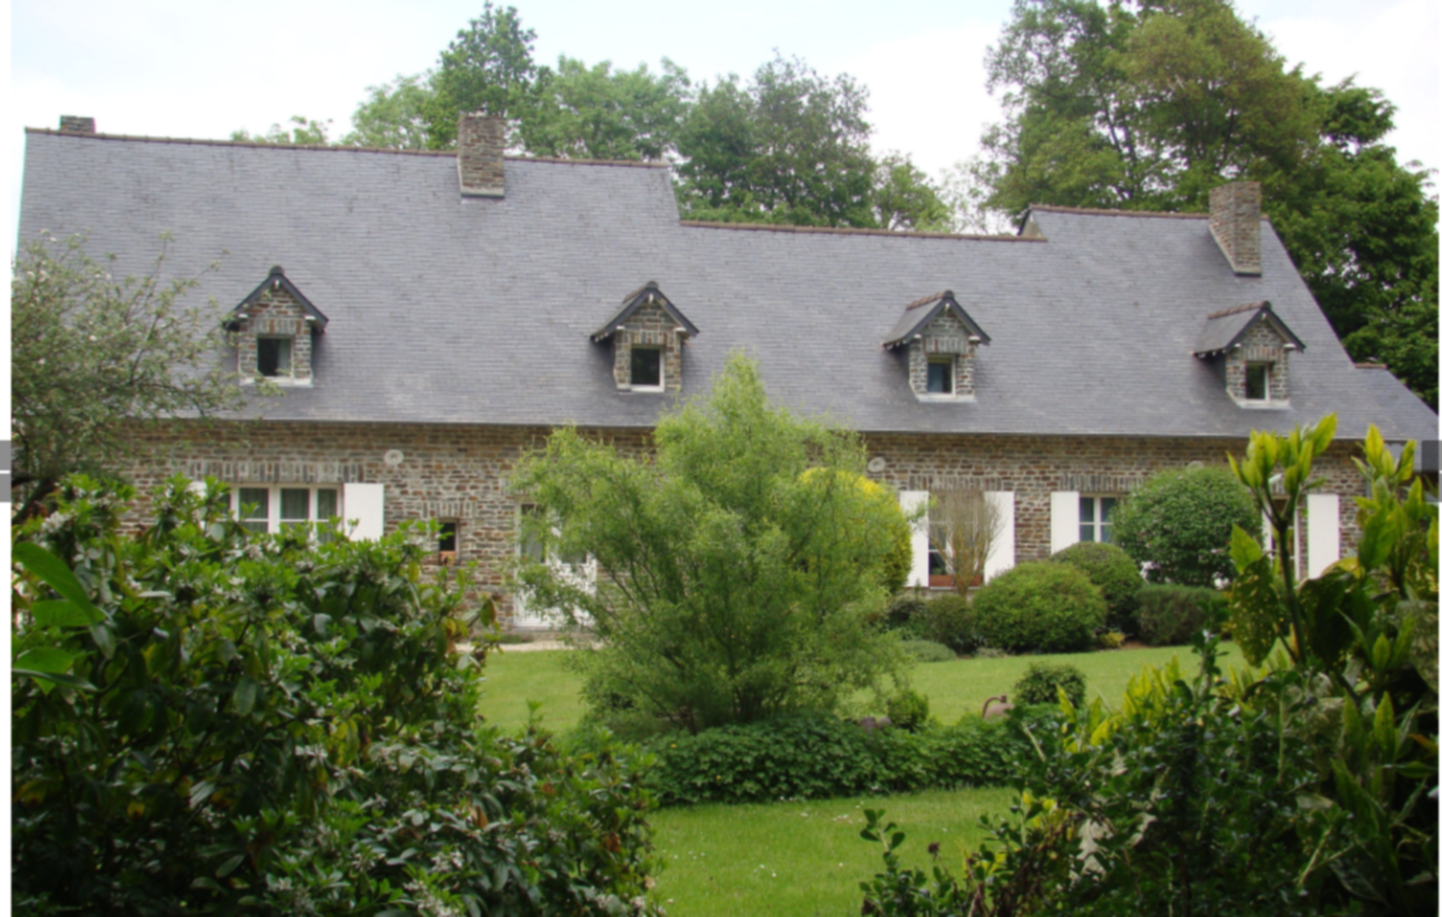 A house with trees in the background at La Bruyère.